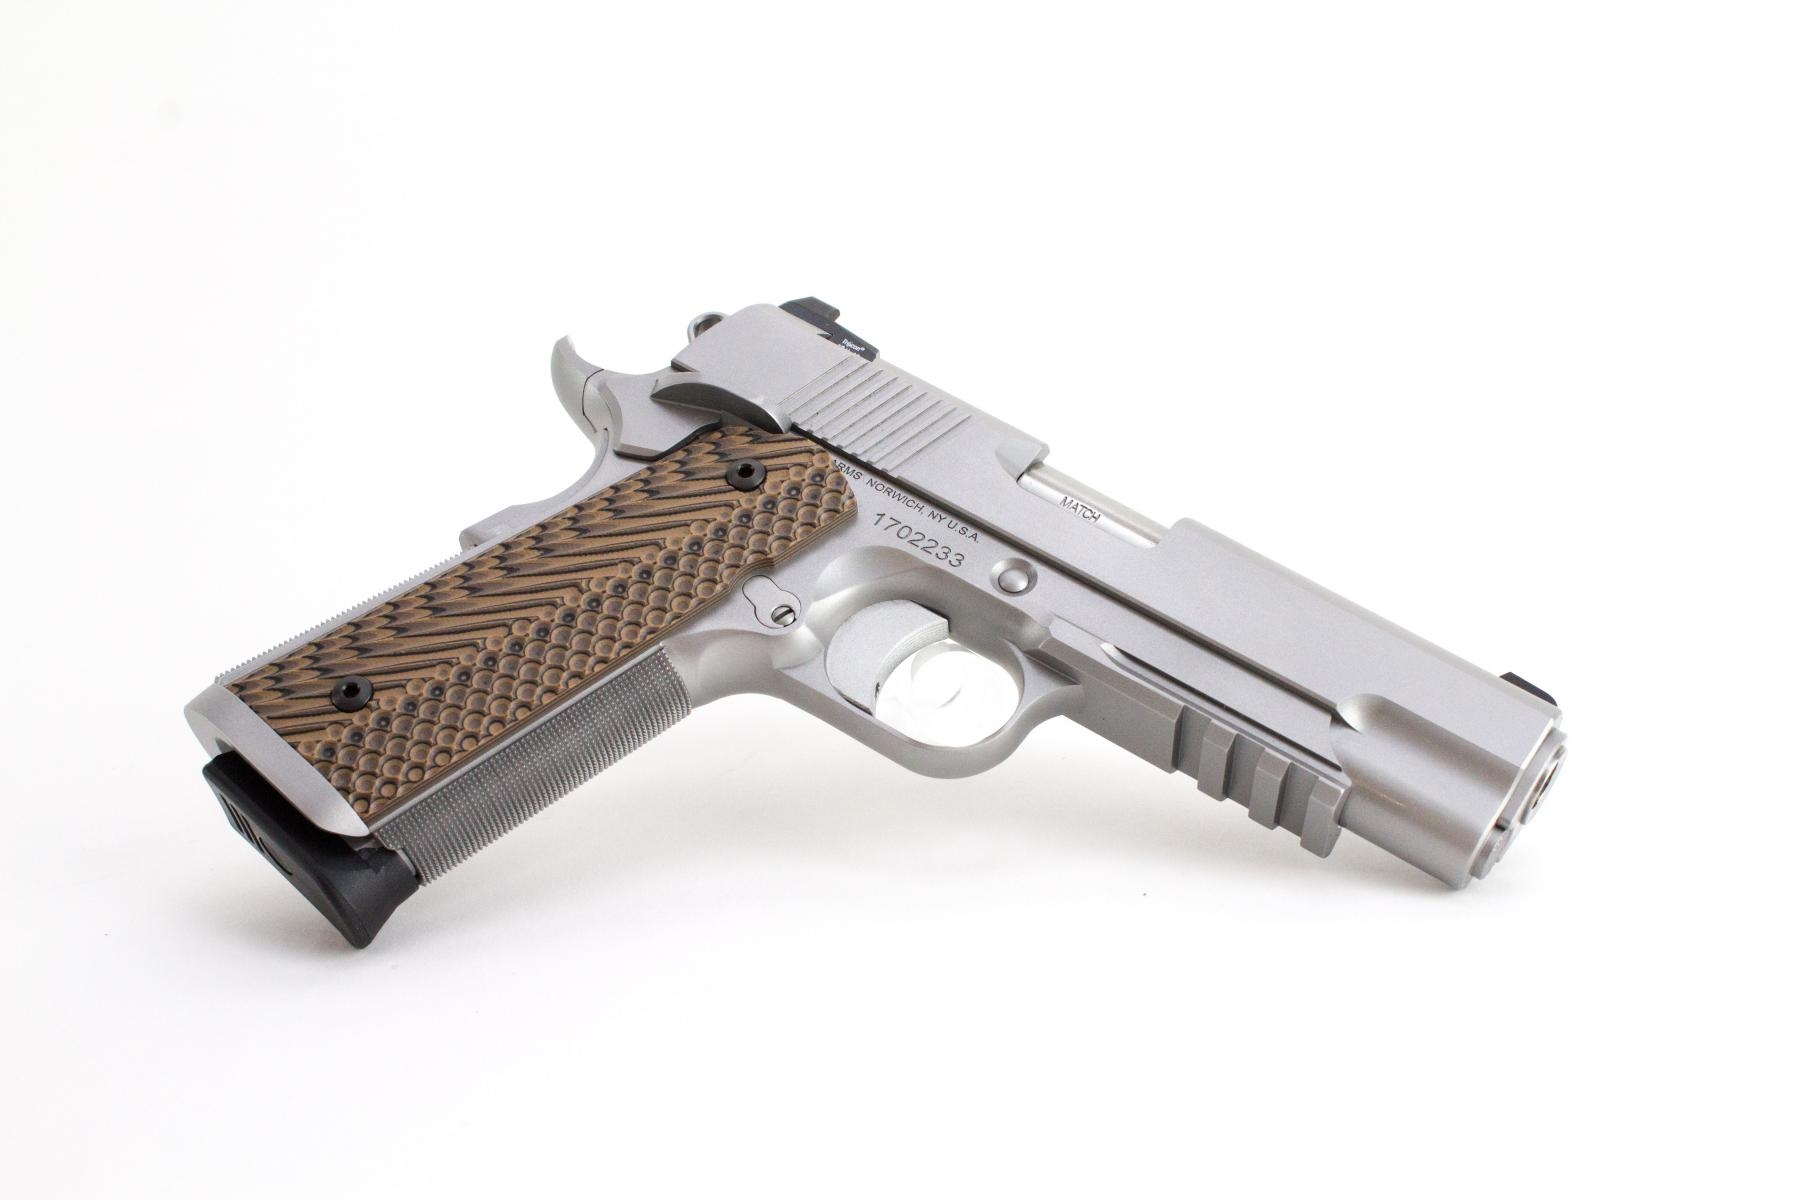 "Dan Wesson Specialist Commander |9mm 1911 4.25"" Barrel Stainless Steel Slide Night Sights G10 Grips Picatinny Rail Ambi Safety, Two 9 Round Magazines"